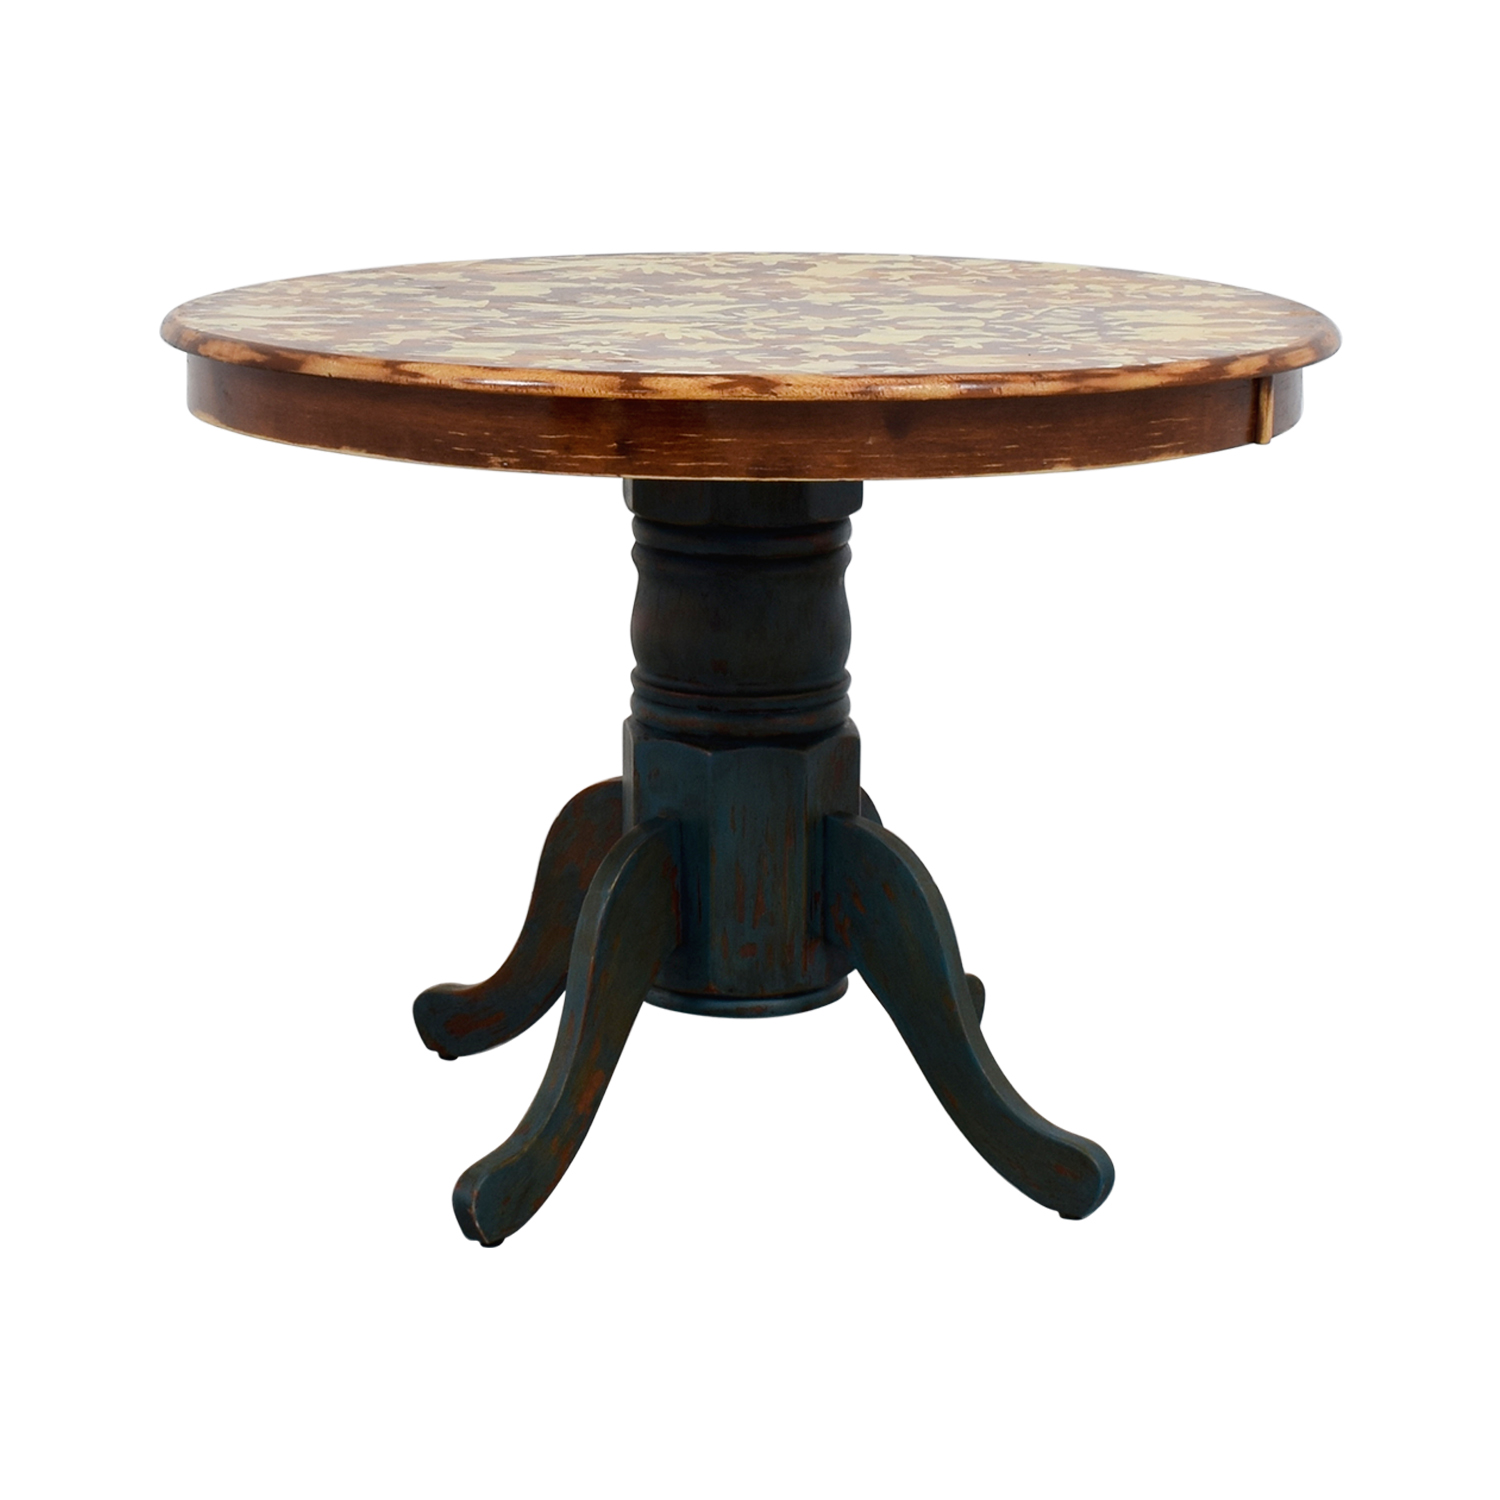 Vintage Hand-Stenciled Farmhouse Style Round Kitchen Table dimensions